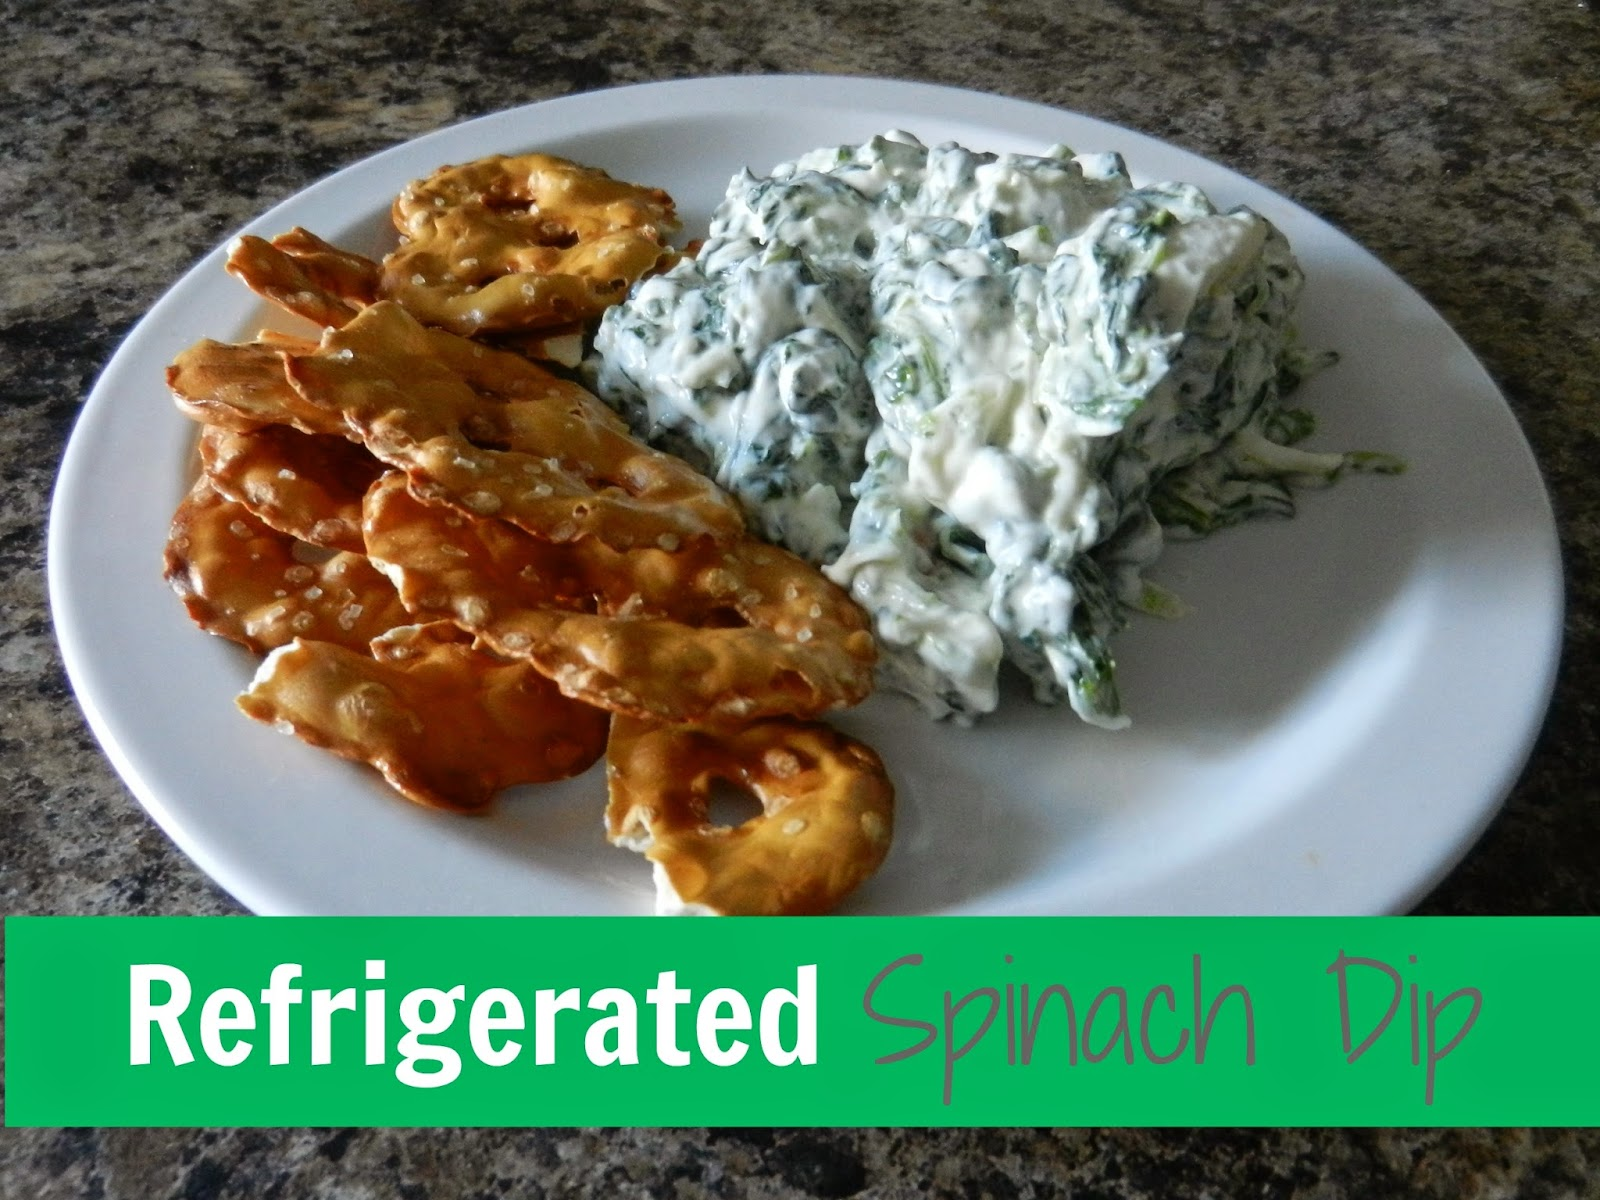 Refrigerated Spinach Dip